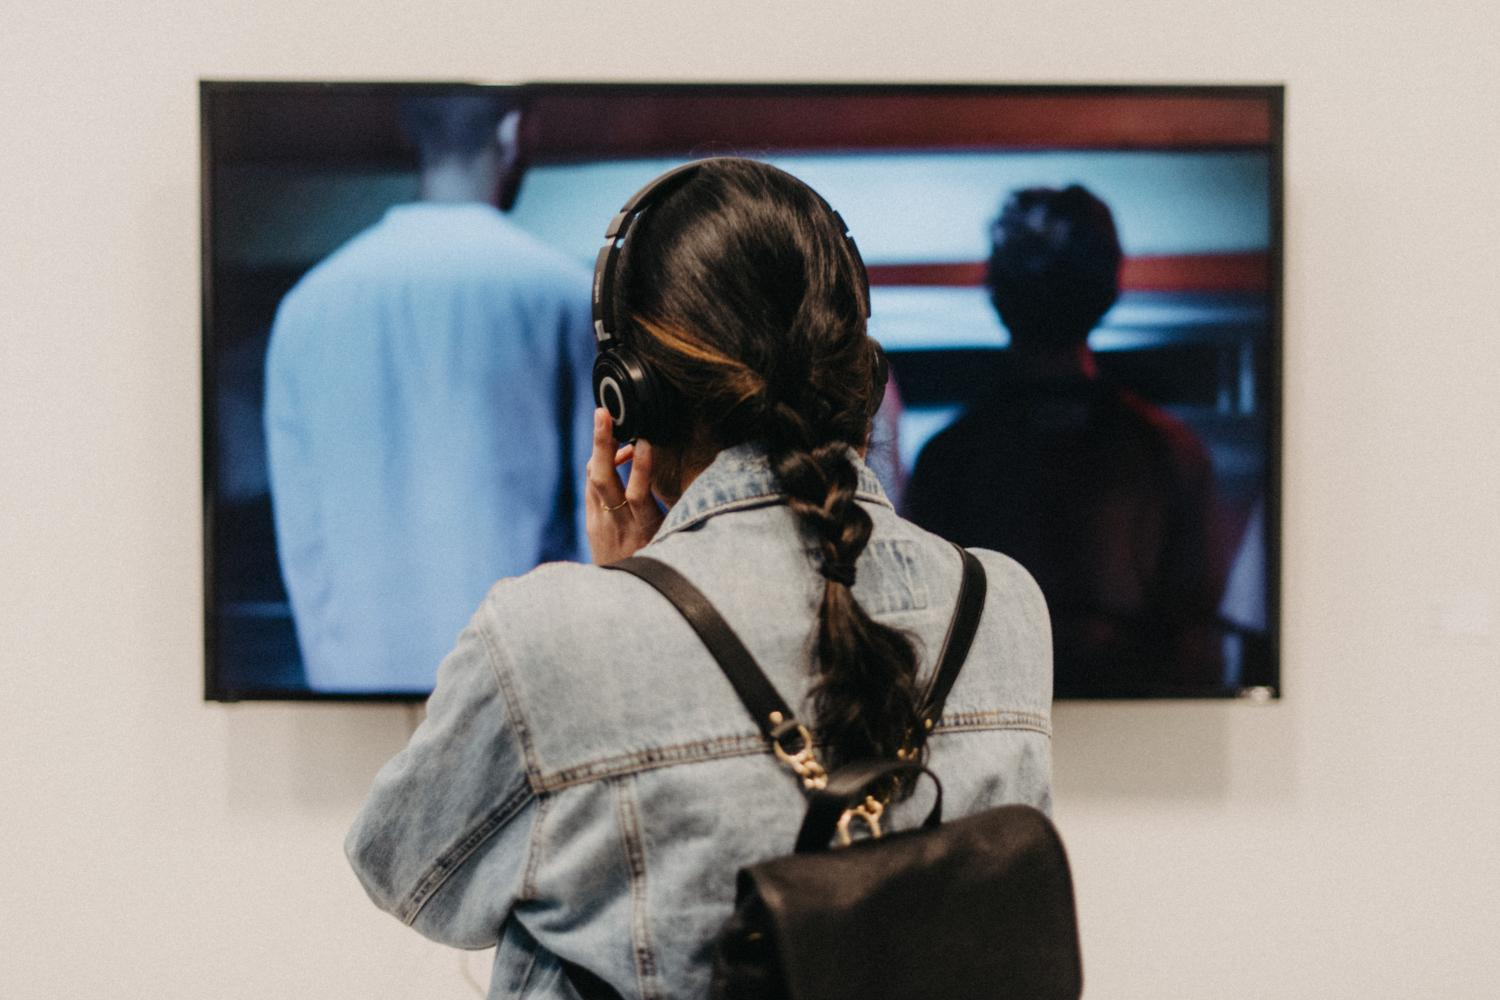 back of a person watching a television screen